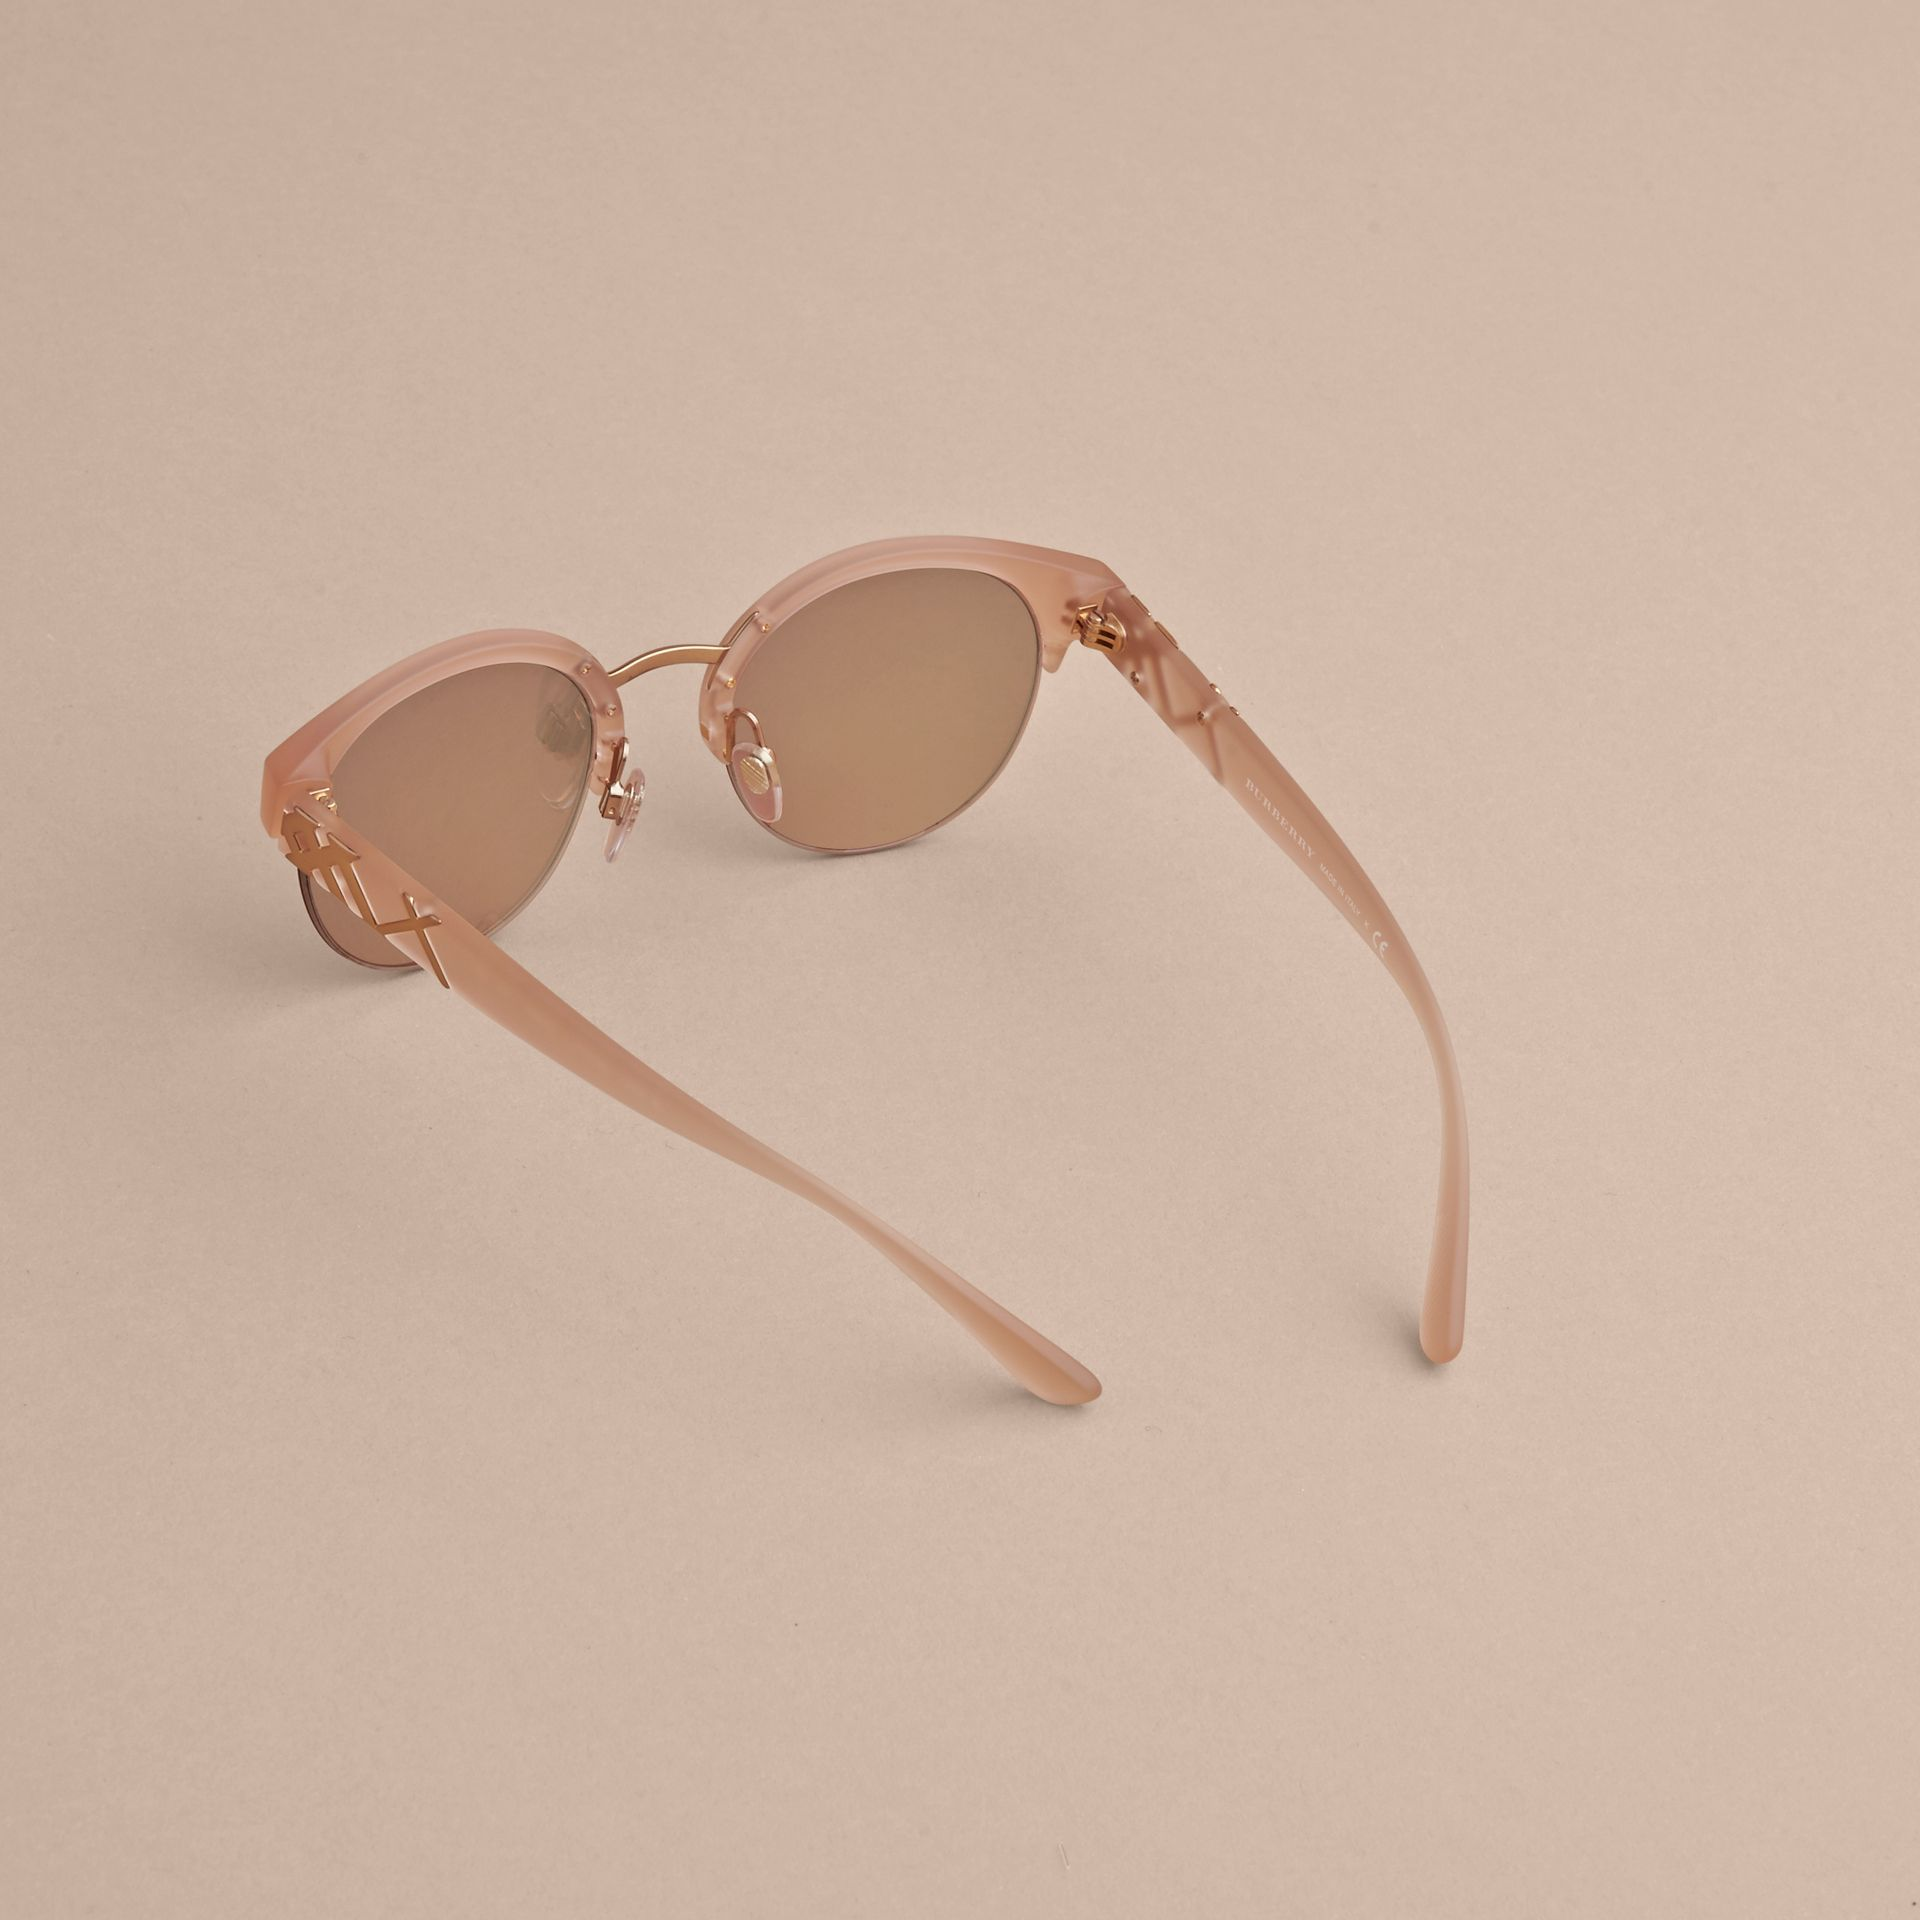 Check Detail Round Half-frame Sunglasses in Nude - Women | Burberry - gallery image 4